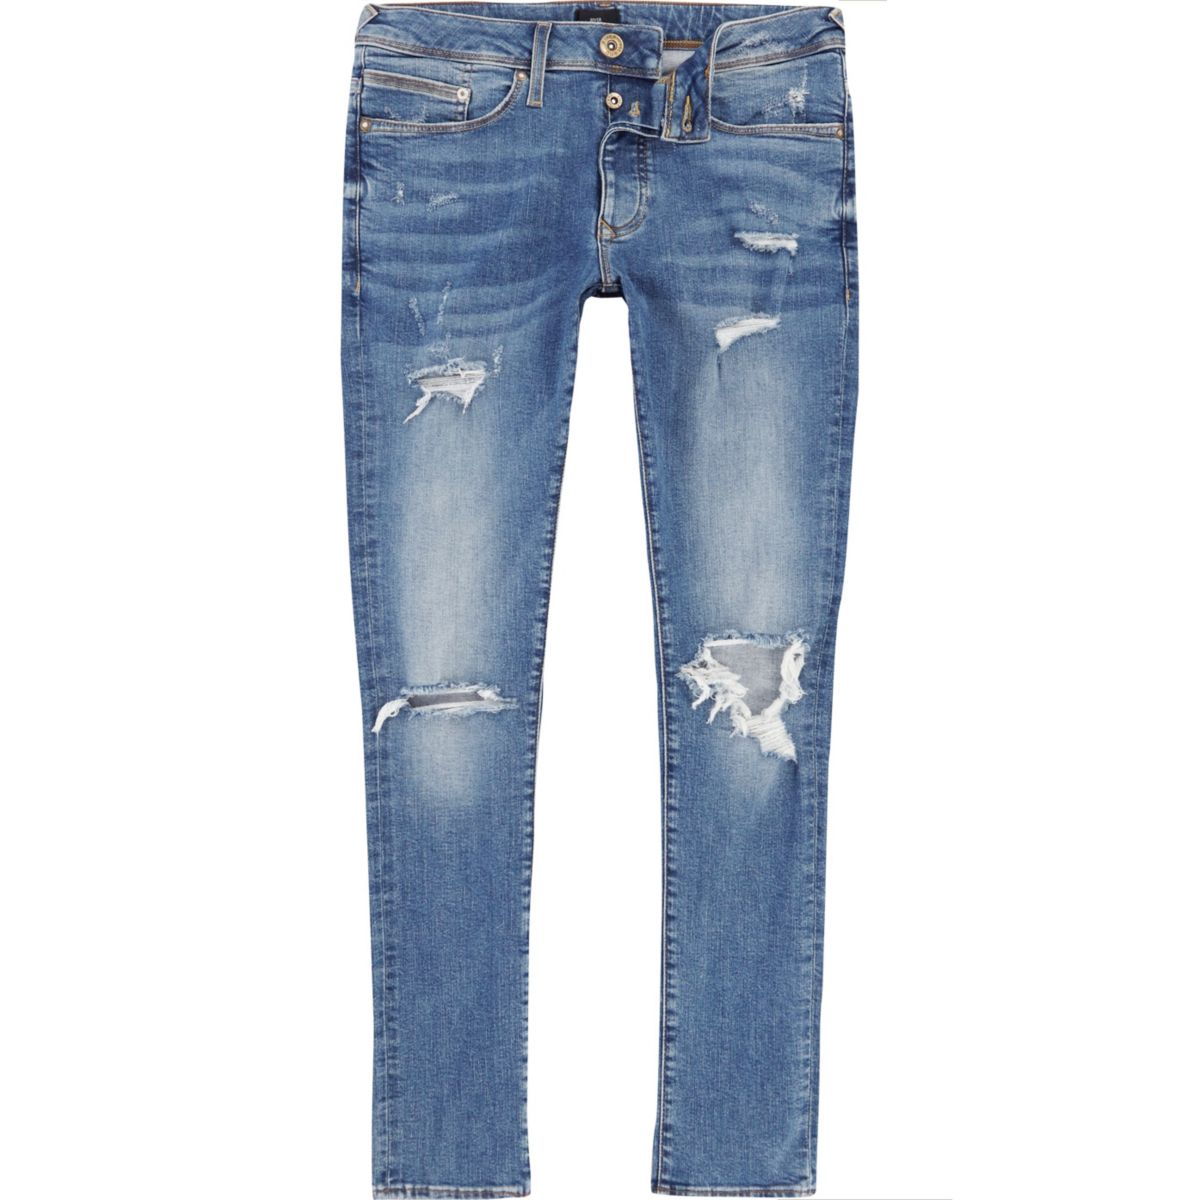 Danny - Middenblauwe ripped superskinny jeans